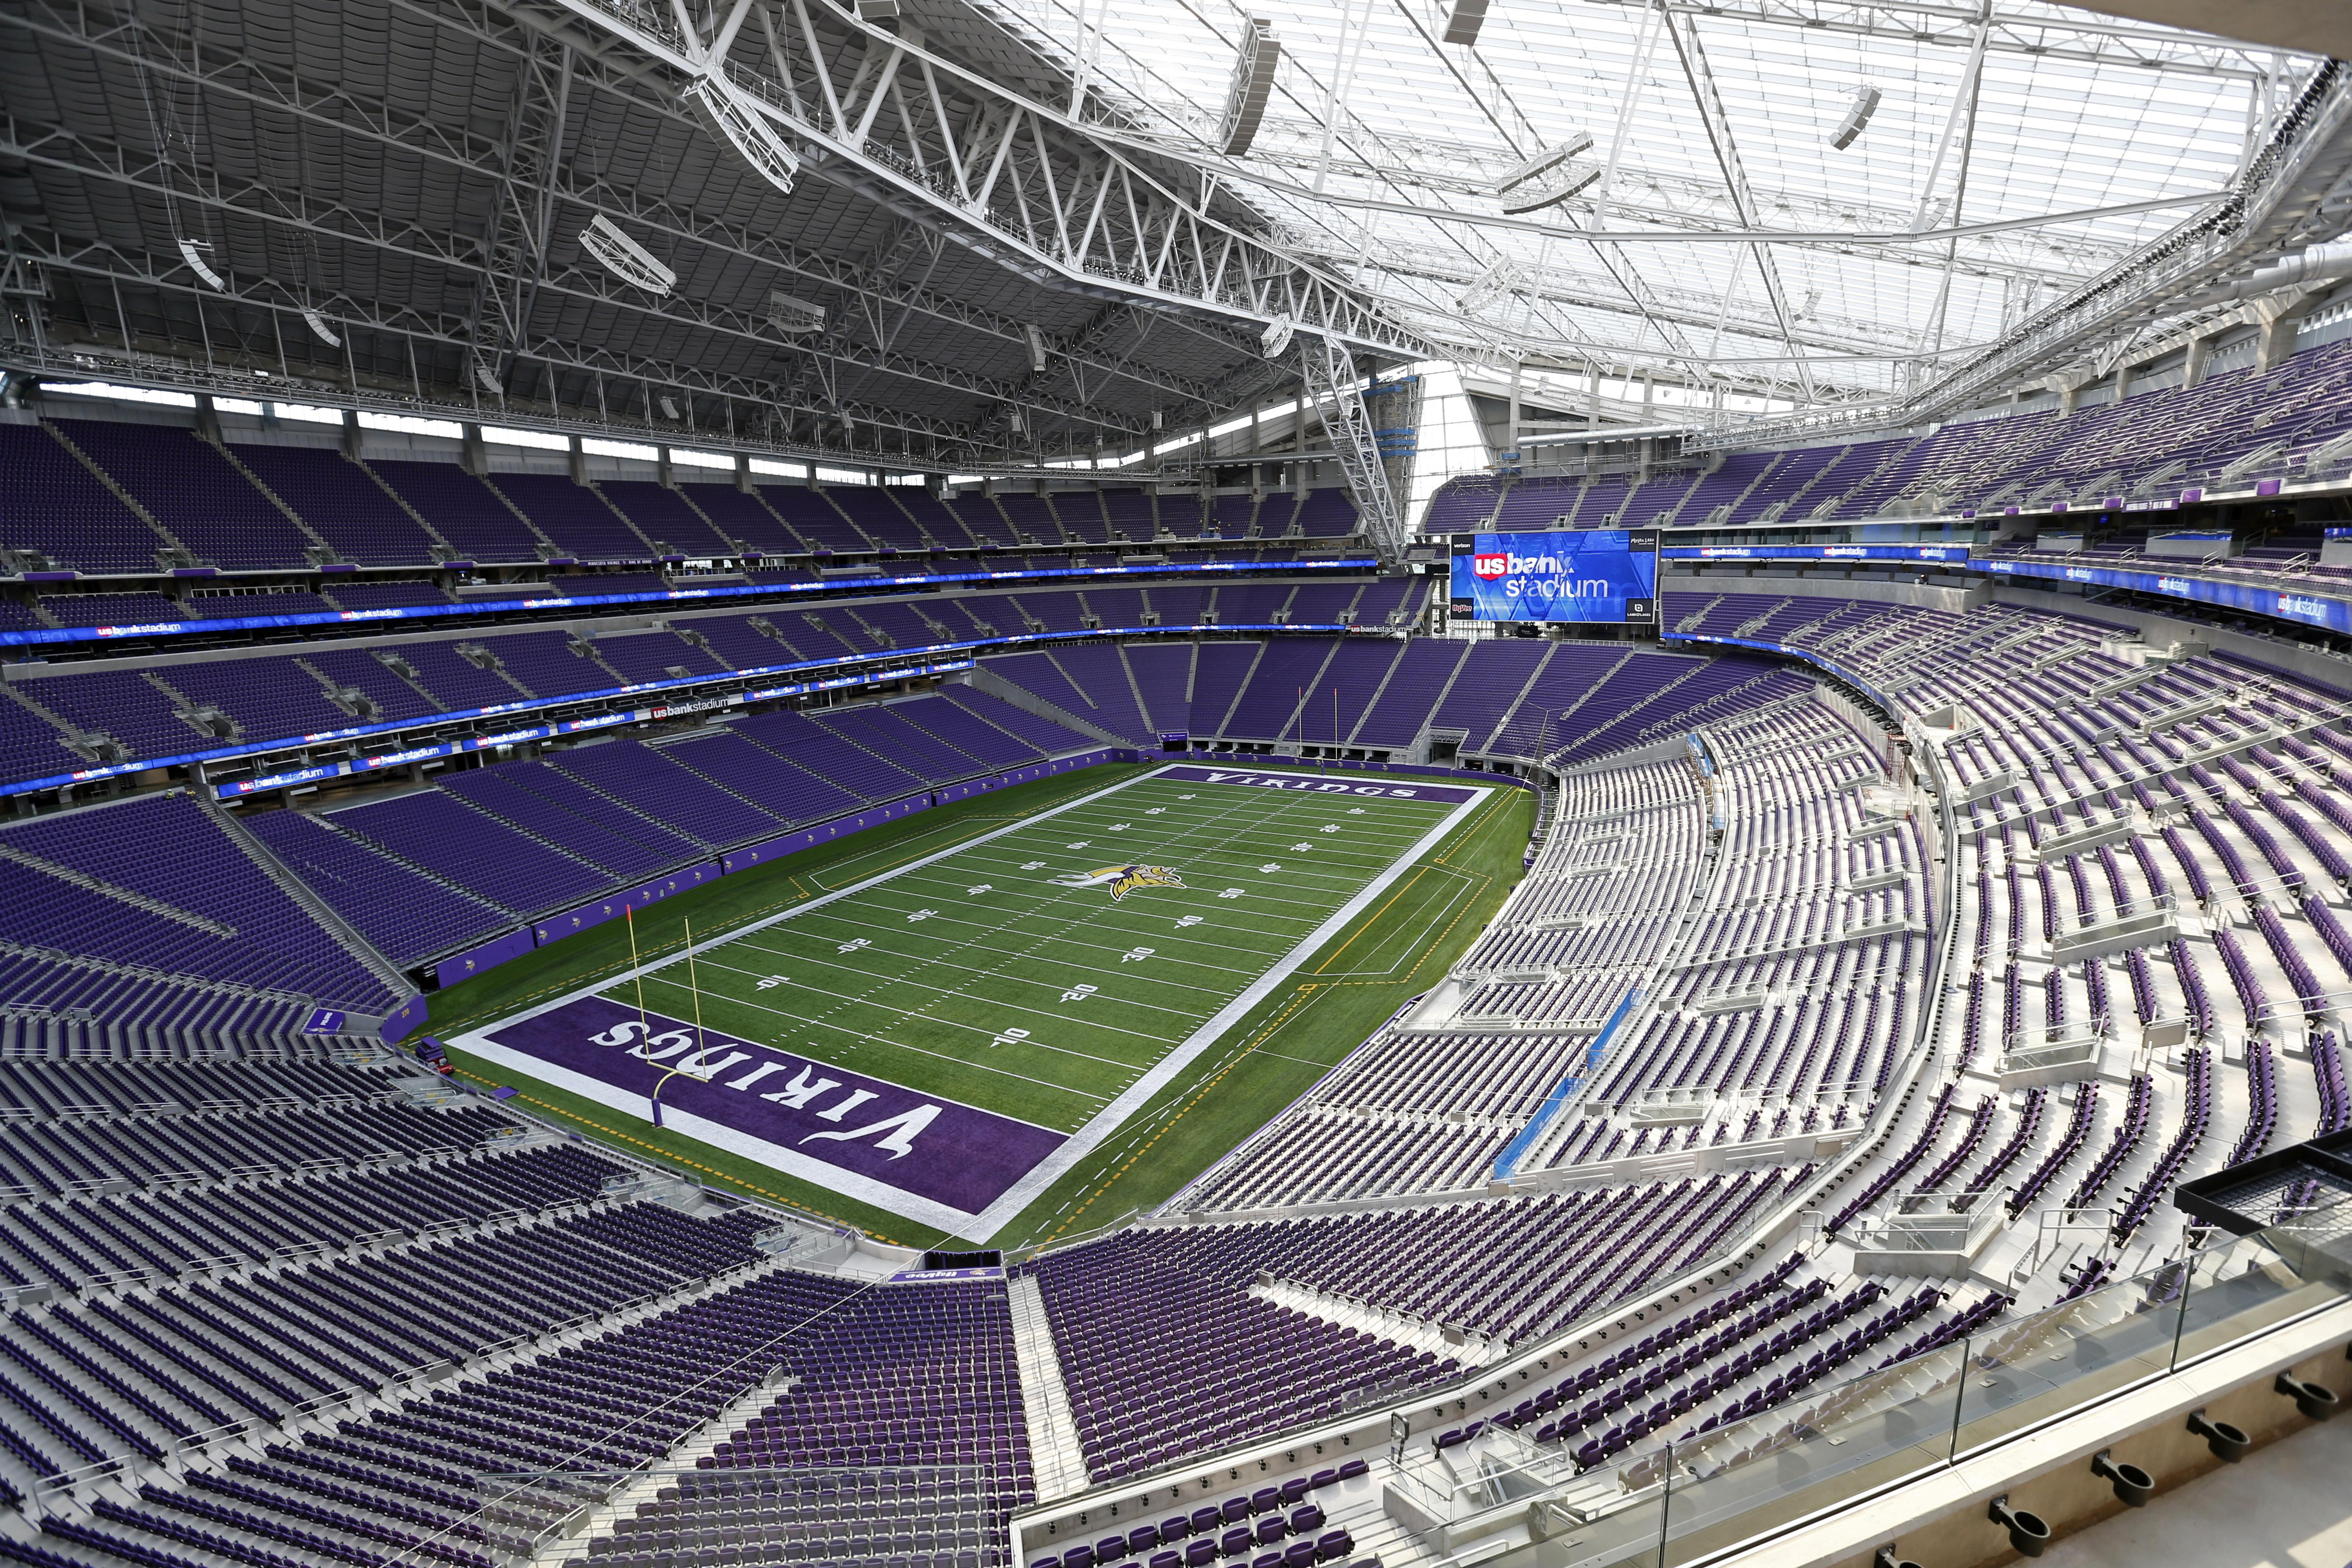 US Bank Stadium in Minneapolis plays host to the Super Bowl this year